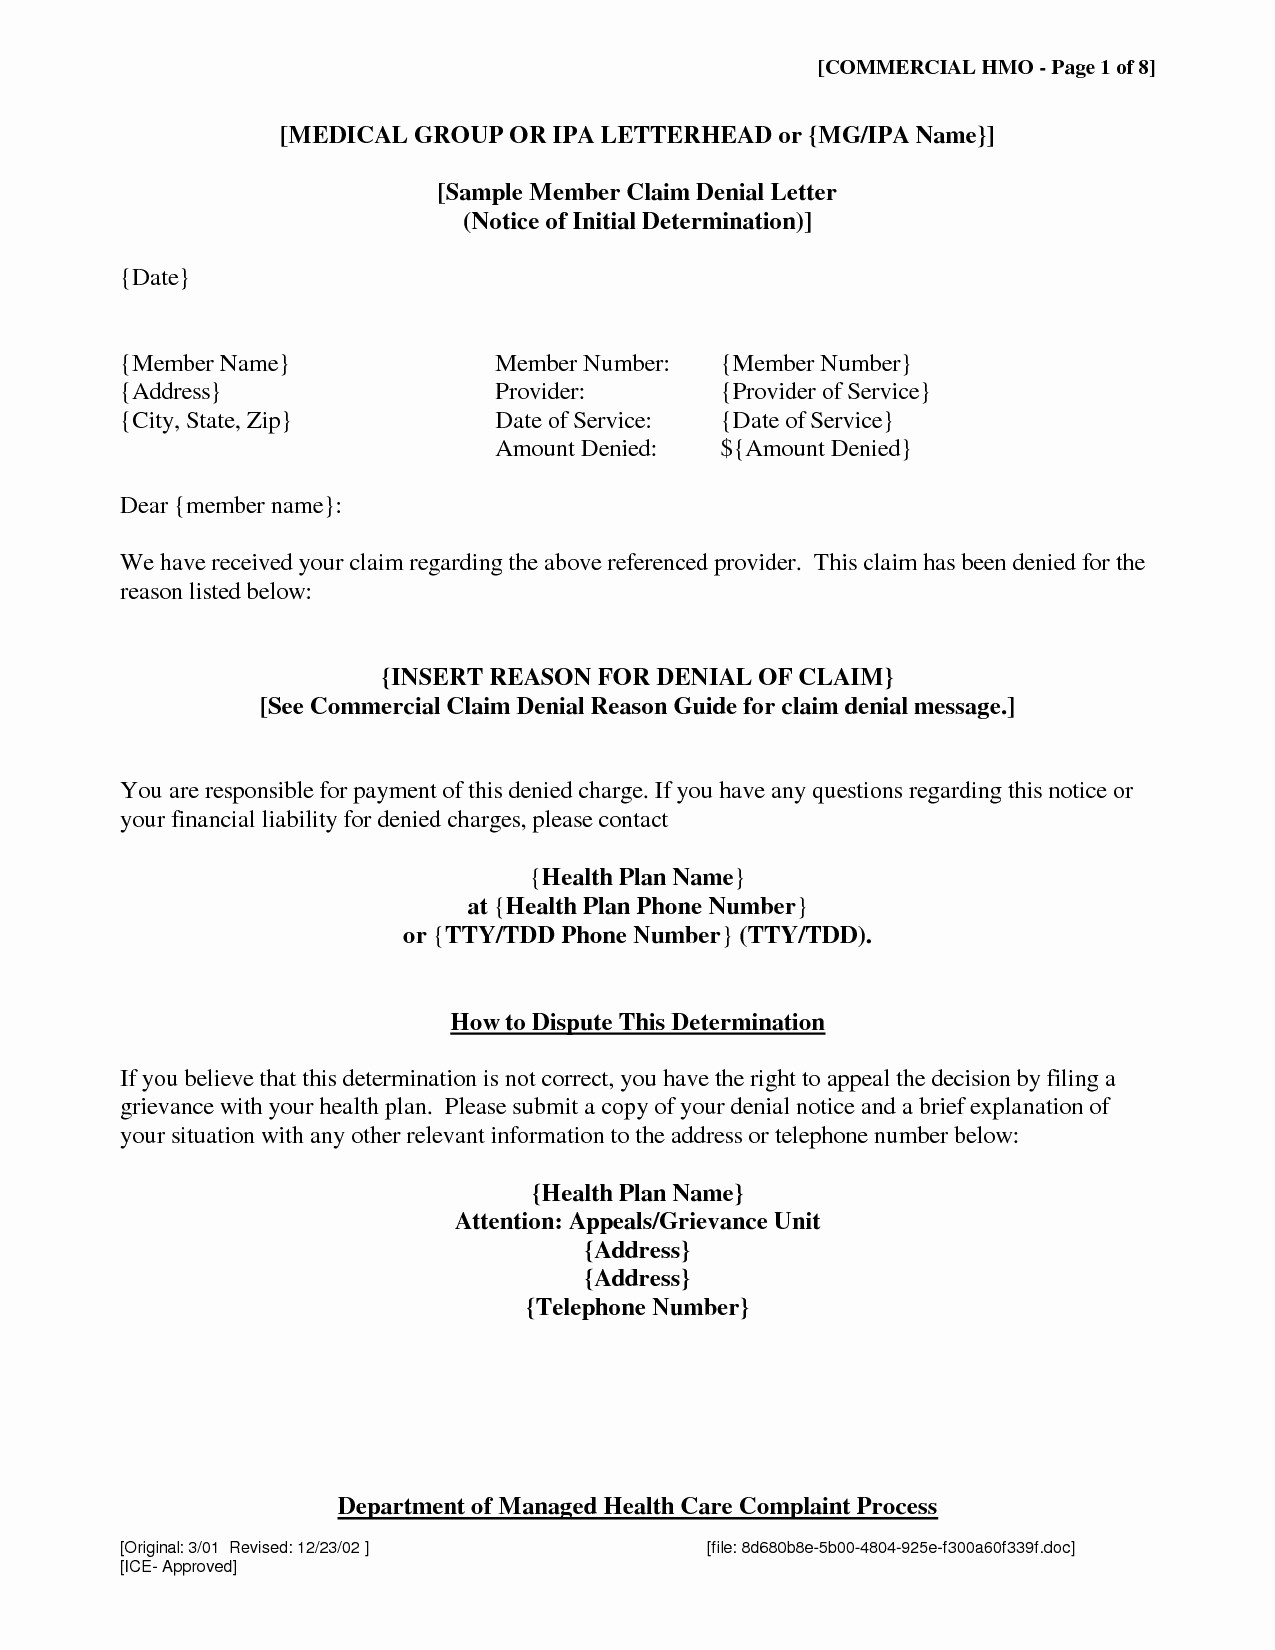 claim denial letter template Collection-Letter Template for Ppi Claim Copy Gallery Title Insurance Claim Letter Sample Fresh Insurance Claim 6-h